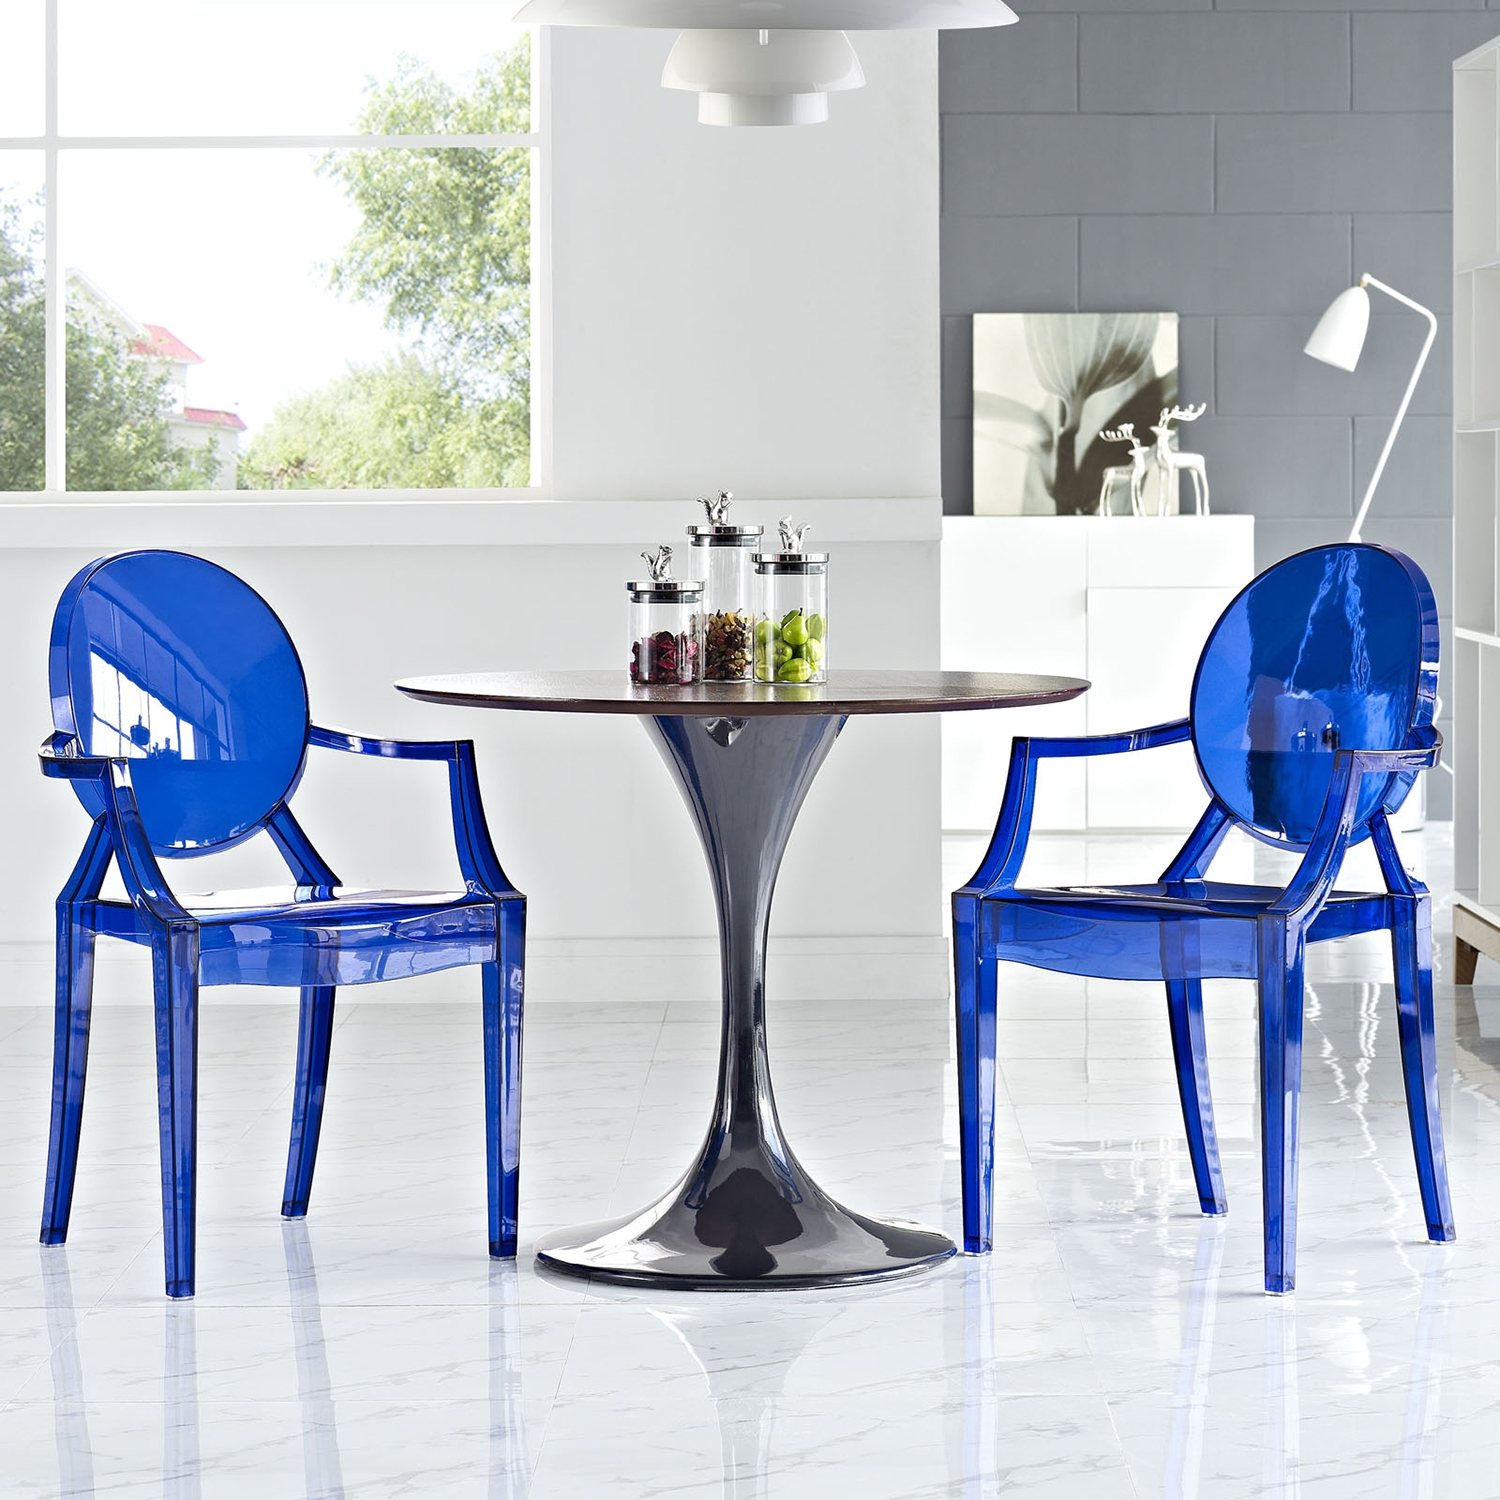 Casper Dining Armchair Set of 2 DCG Stores : eei 905 6 from www.dcgstores.com size 1000 x 1000 jpeg 539kB